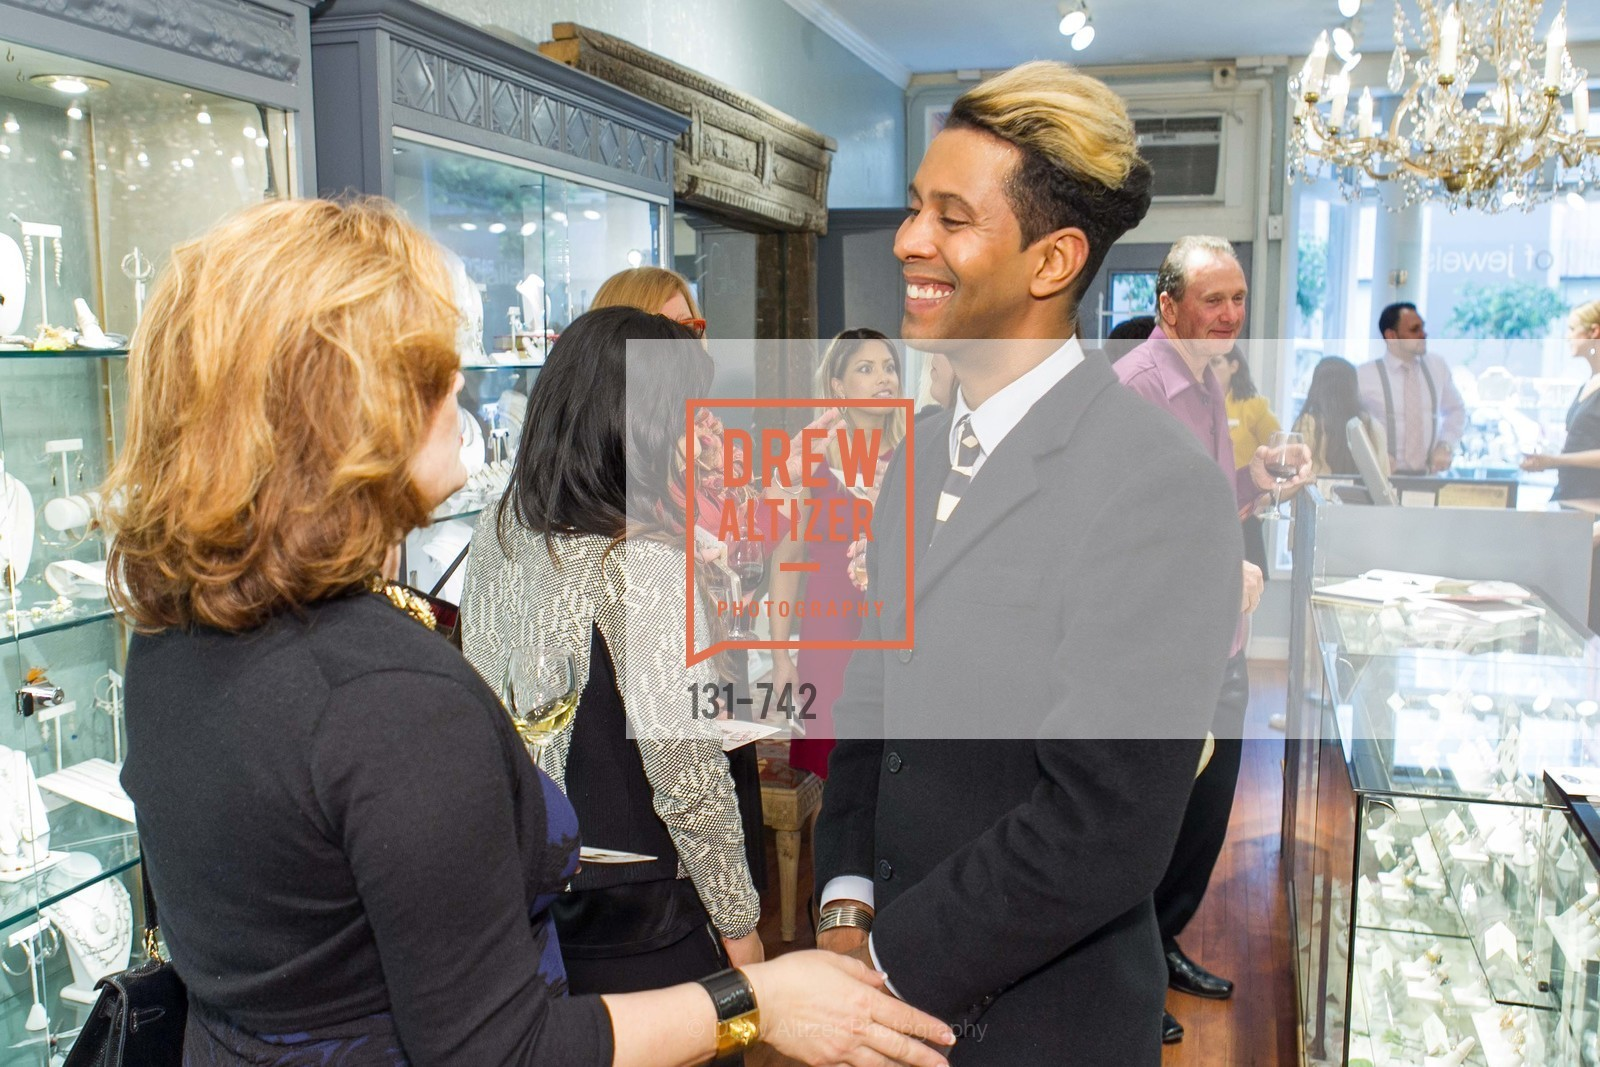 Emillio Mesa, LUXETIGERS & GALLERY OF JEWELS Benefit for Dress for Success, US, May 21st, 2015,Drew Altizer, Drew Altizer Photography, full-service agency, private events, San Francisco photographer, photographer california